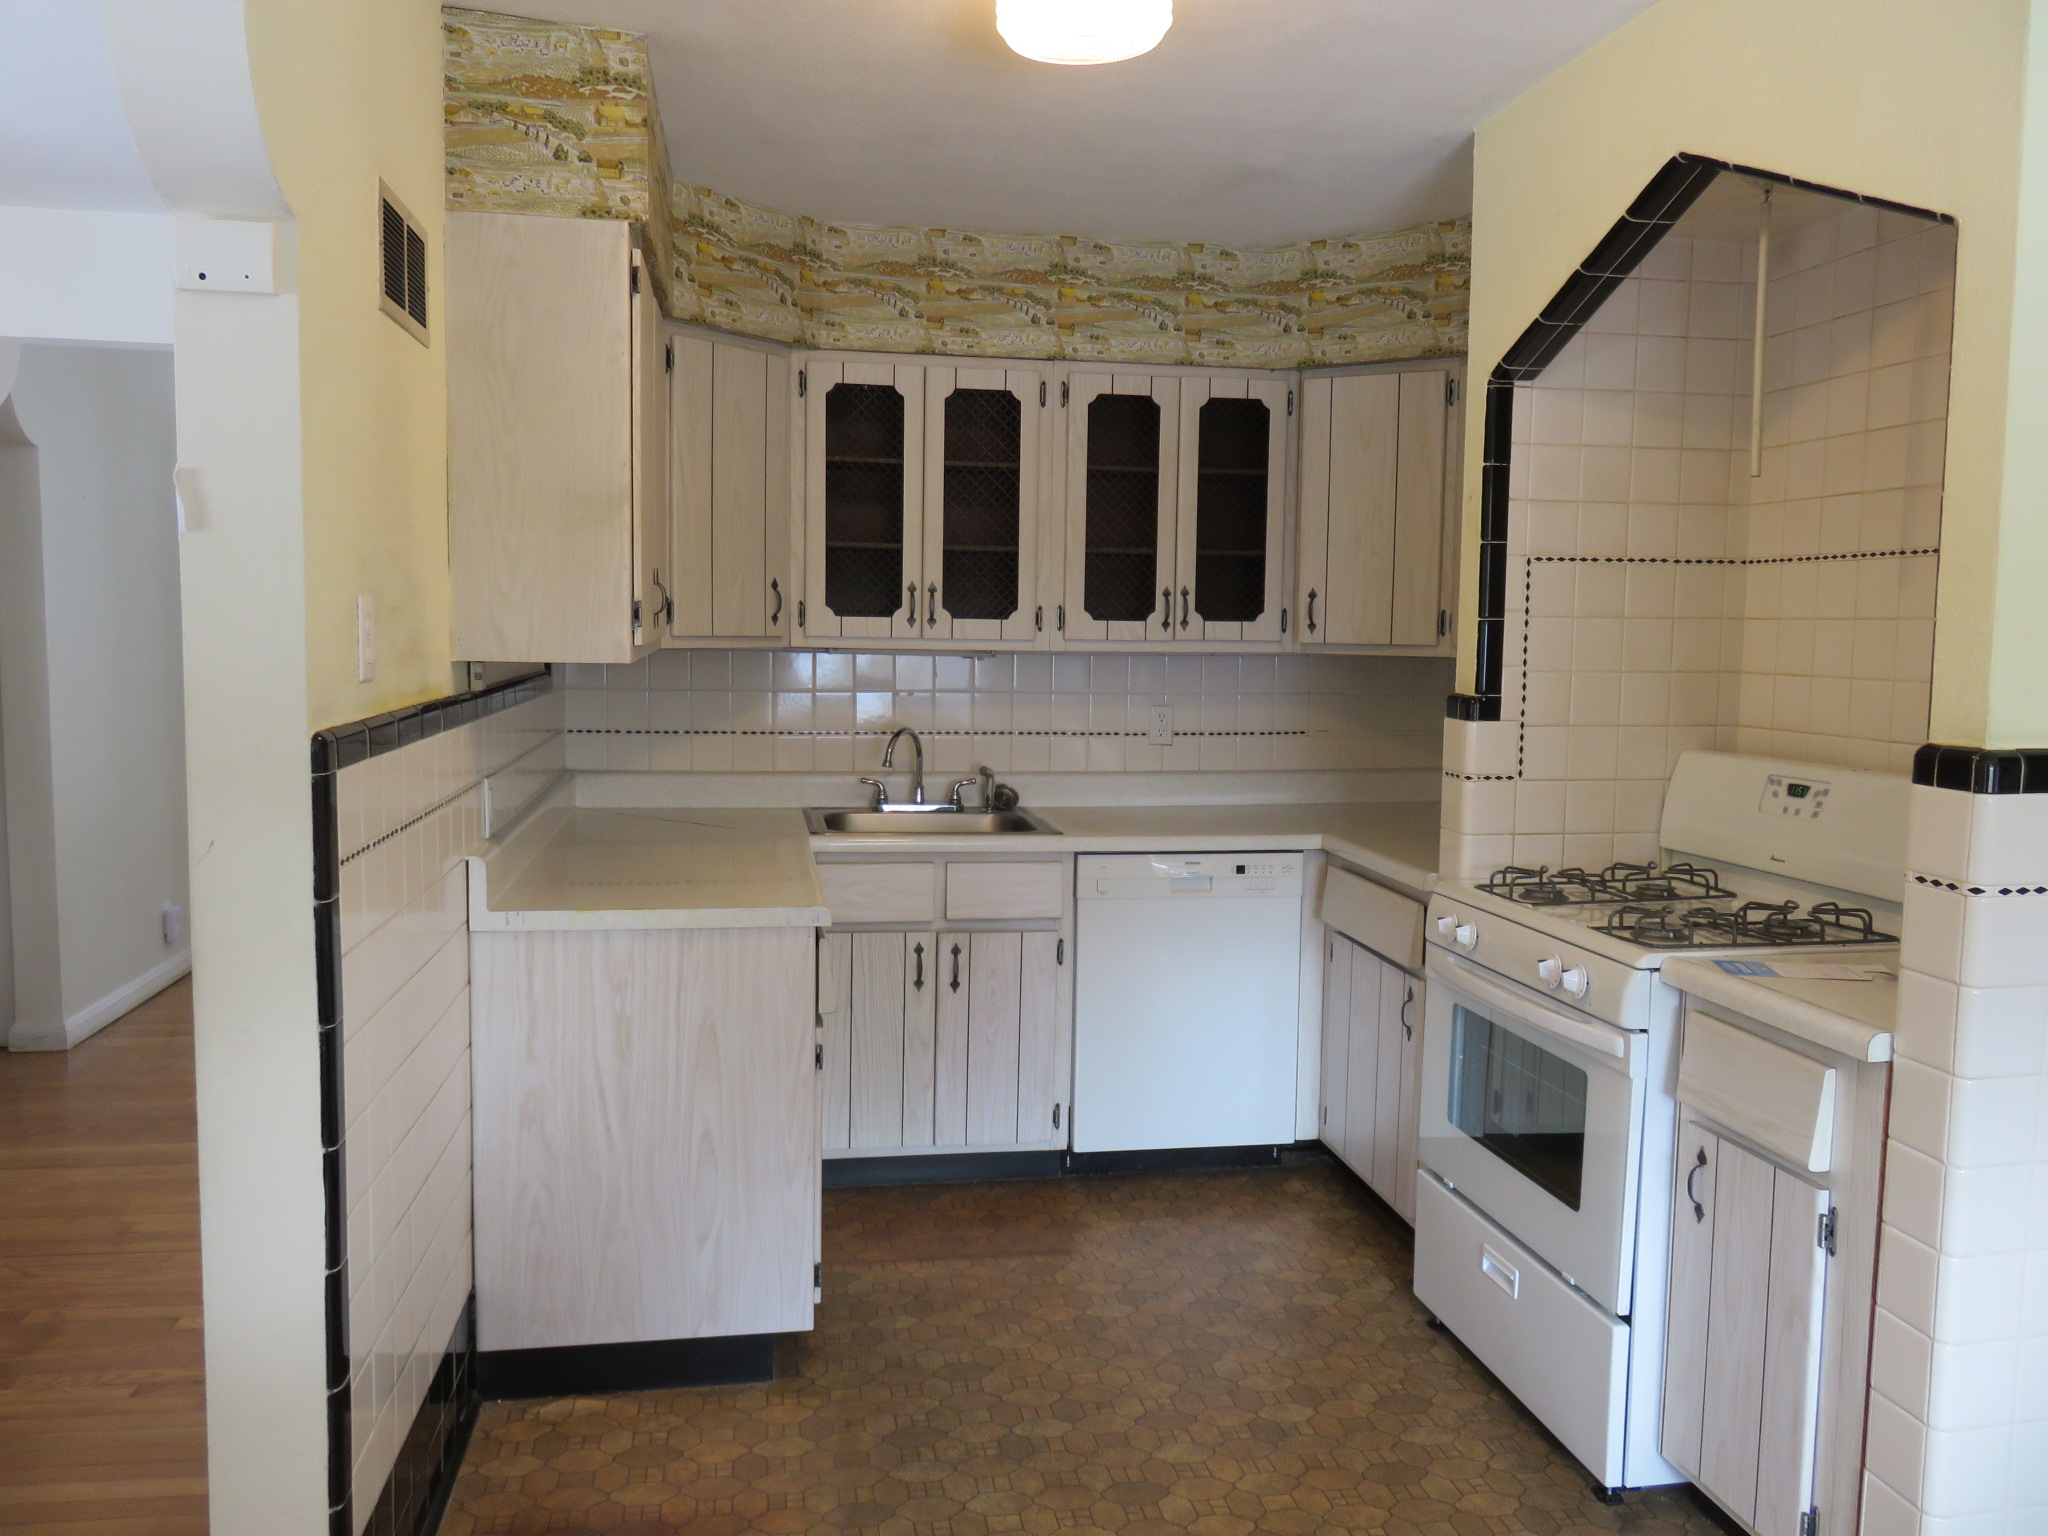 Kitchen Remodel: Before and After (Part 1)